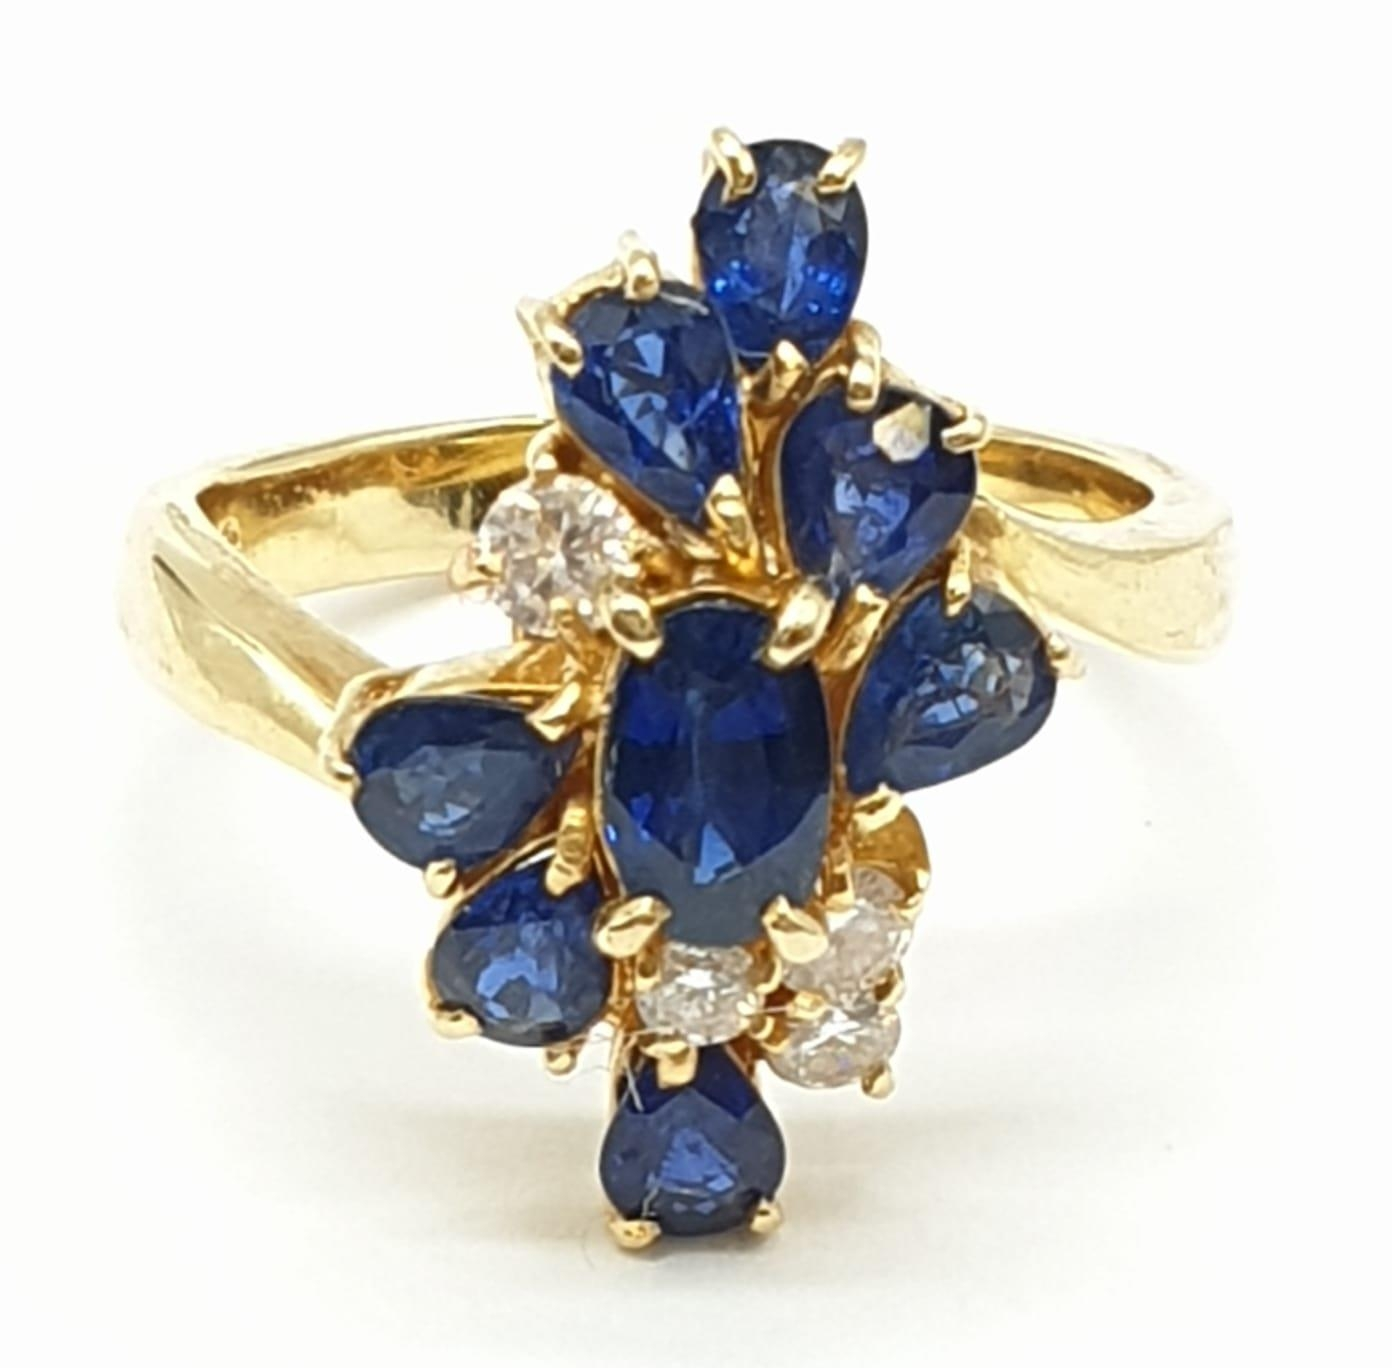 18ct Yellow Gold Cross Over Diamond and Sapphire Ring, Ring Size K, Weight 5.8g